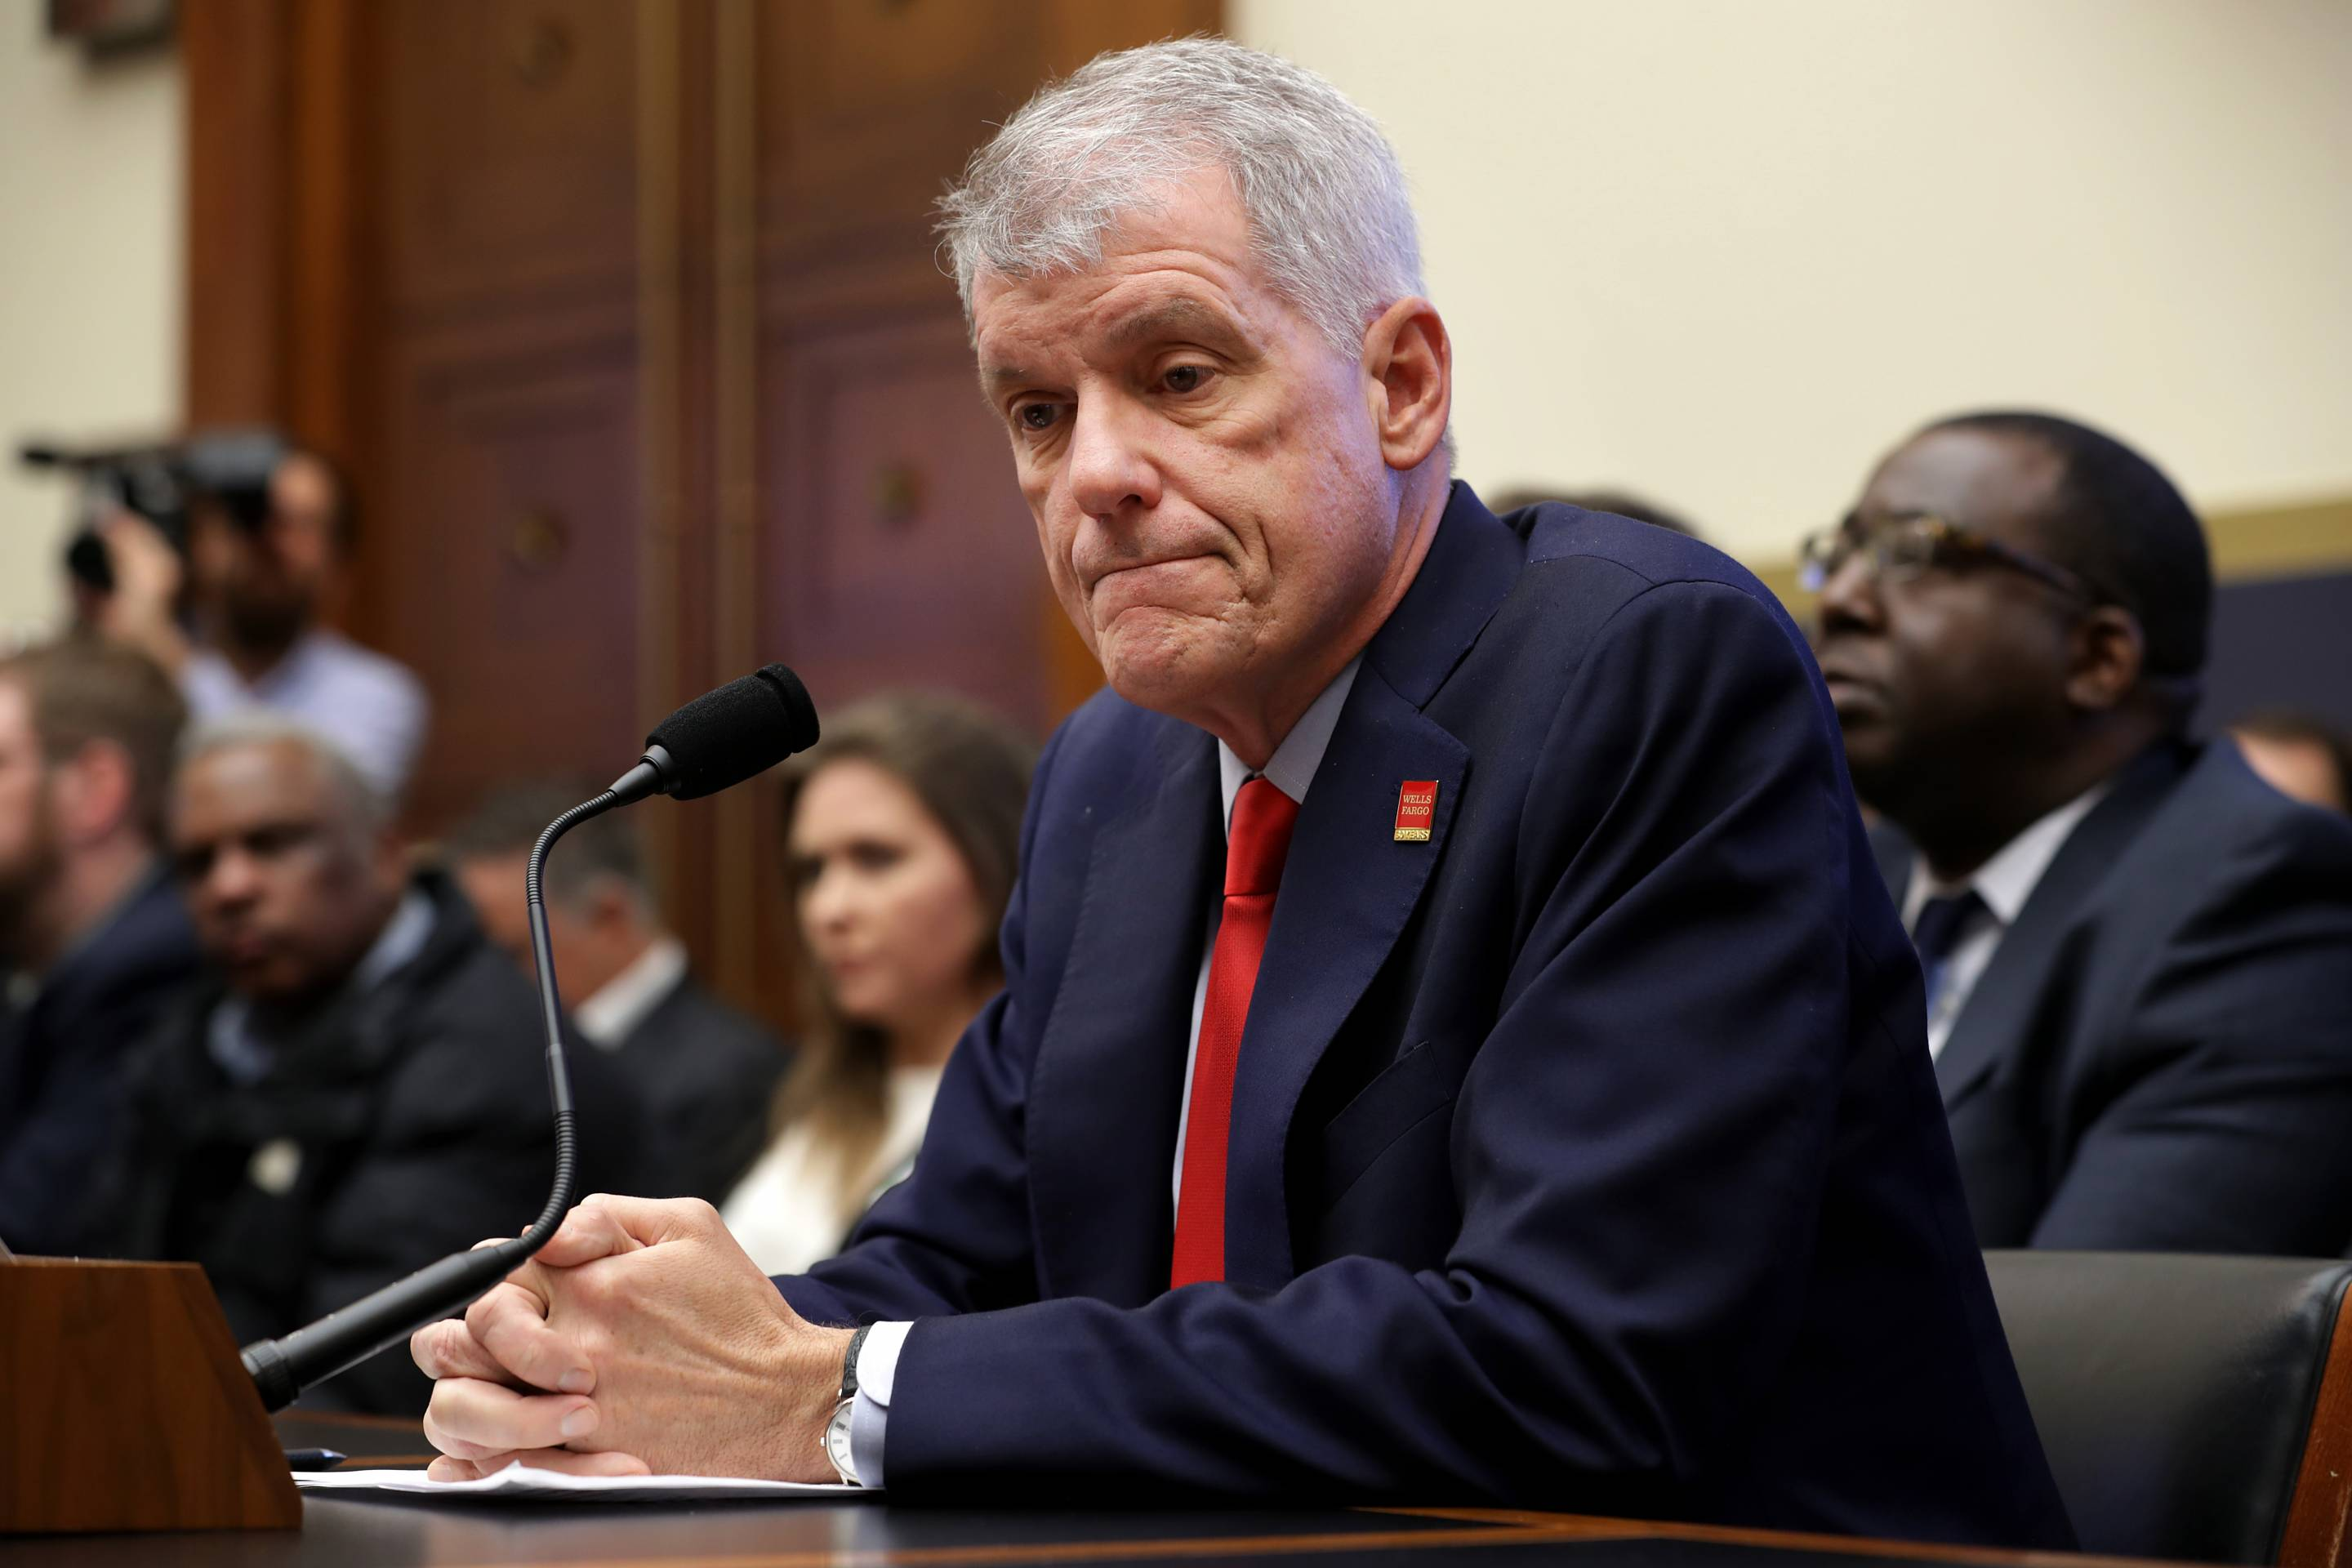 Wells Fargo CEO Tim Sloan Testifies Before House Financial Services Committee